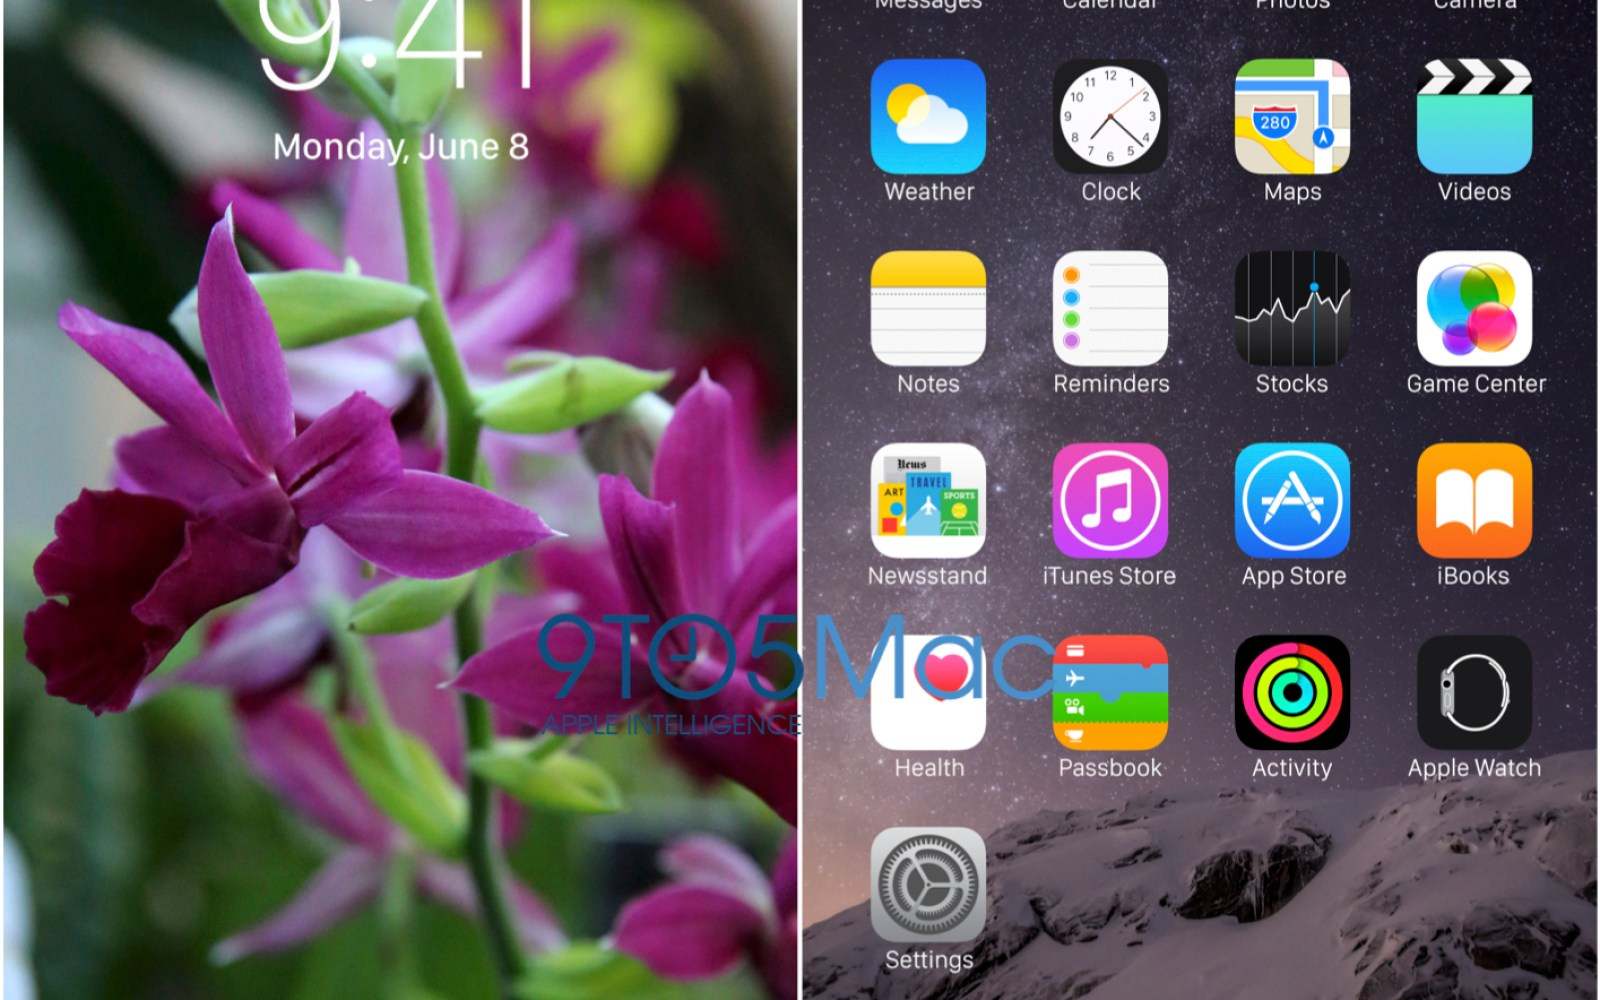 Apple plans to refresh iOS 9, OS X 10.11 using new Apple Watch font